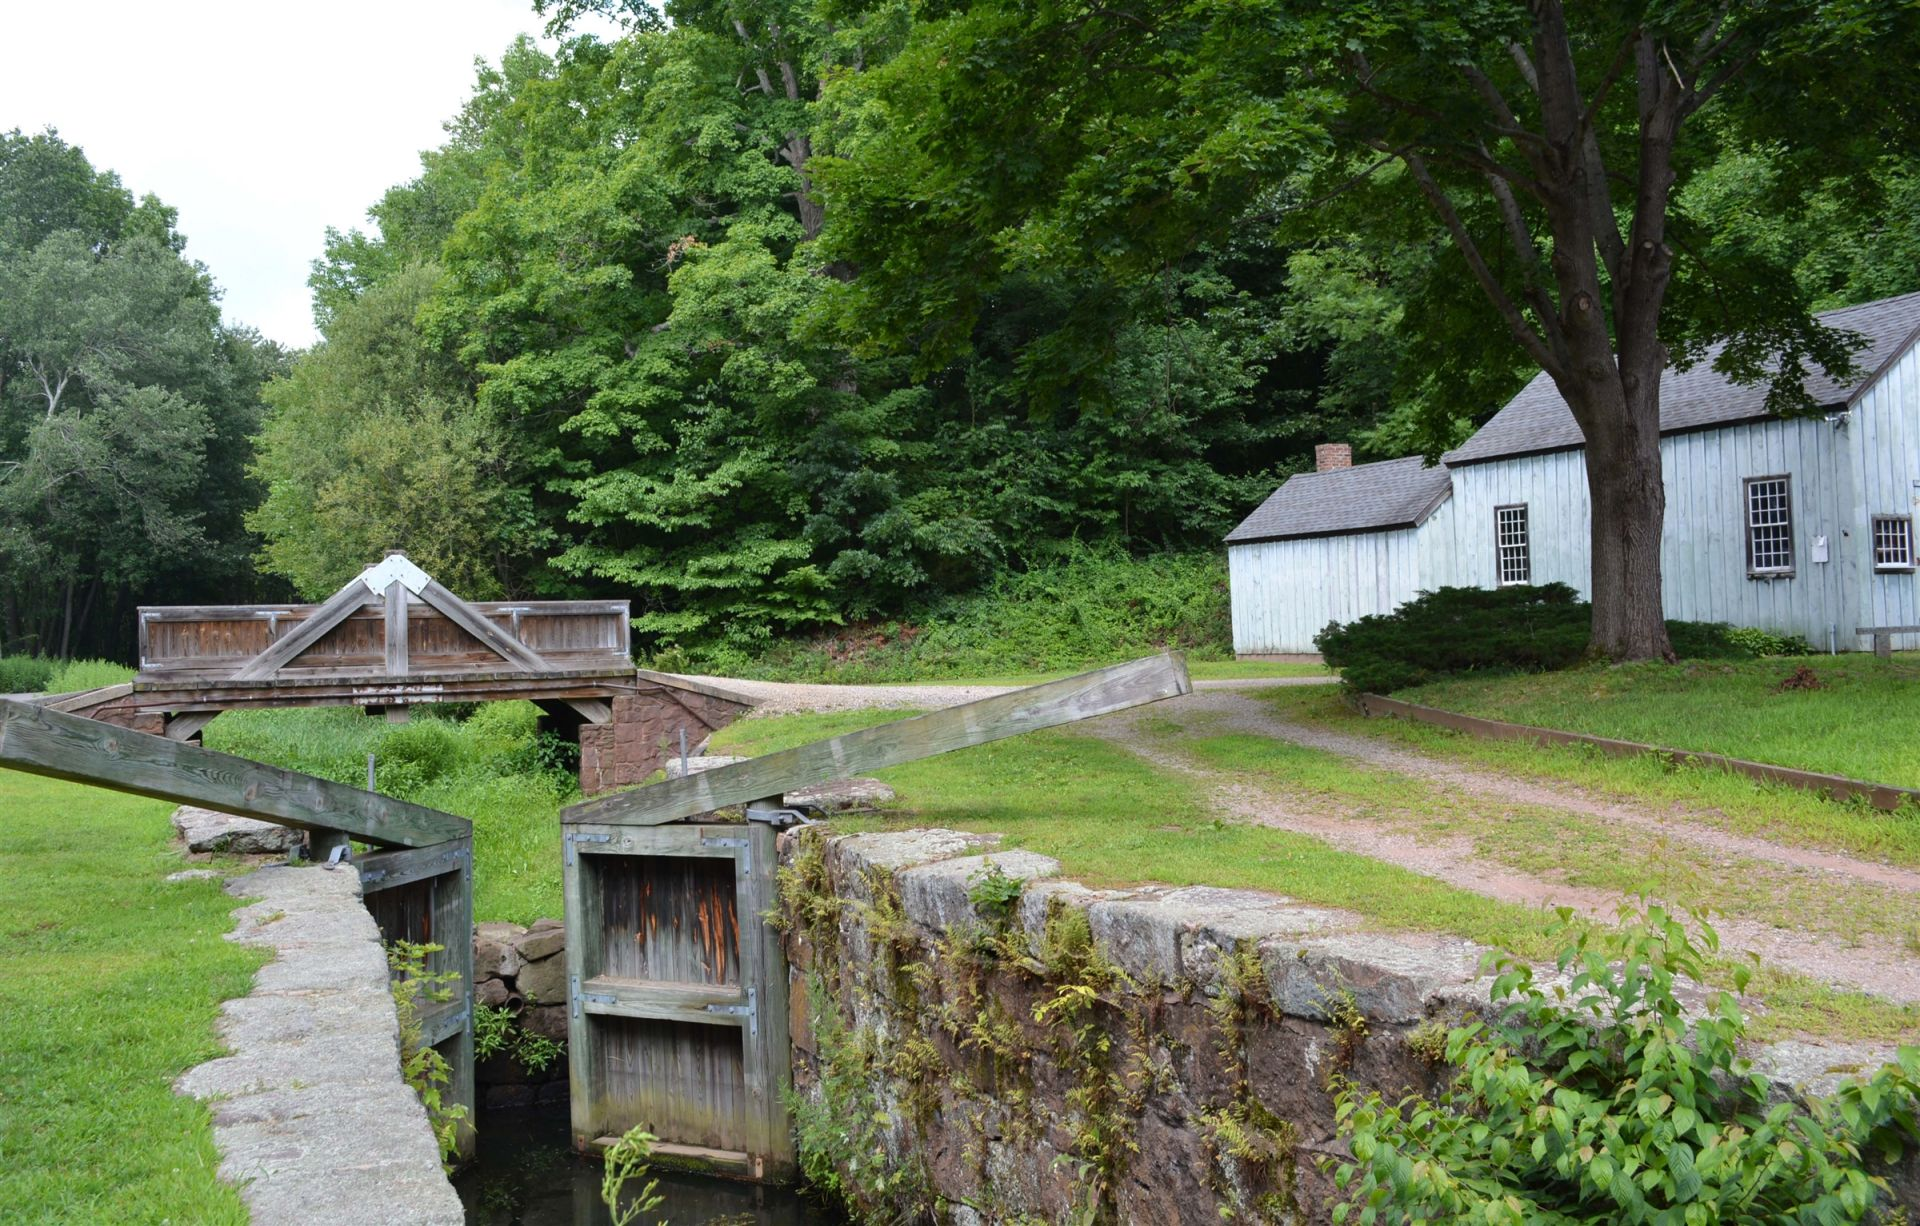 Wooden gates, or locks, allowed barges to travel along the former Farmington Canal which passed through Cheshire. The popular Lock 12 Park is located off North Brooksvale Road.